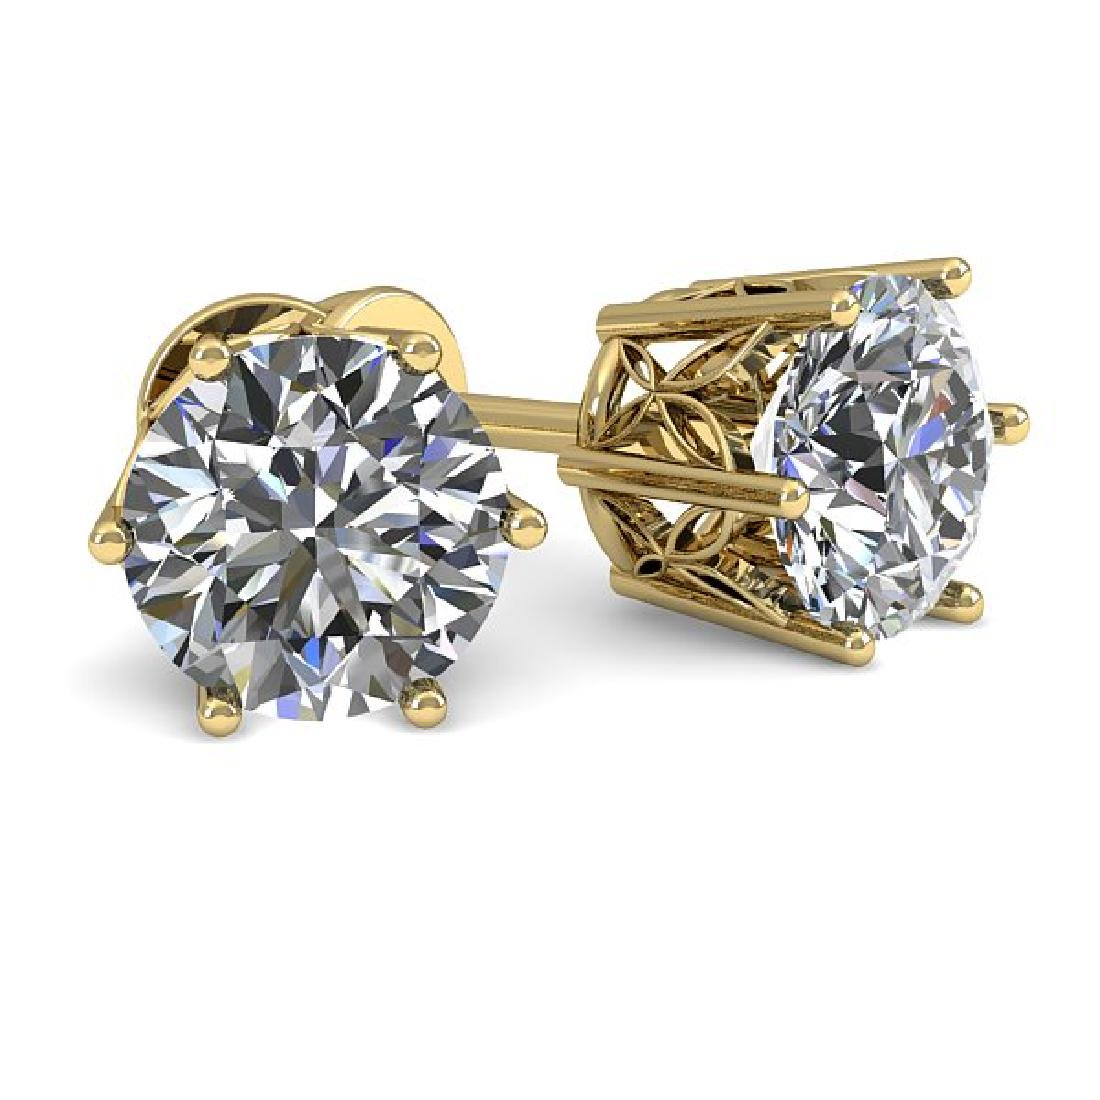 1.05 CTW VS/SI Diamond Stud Art Deco Earrings 14K